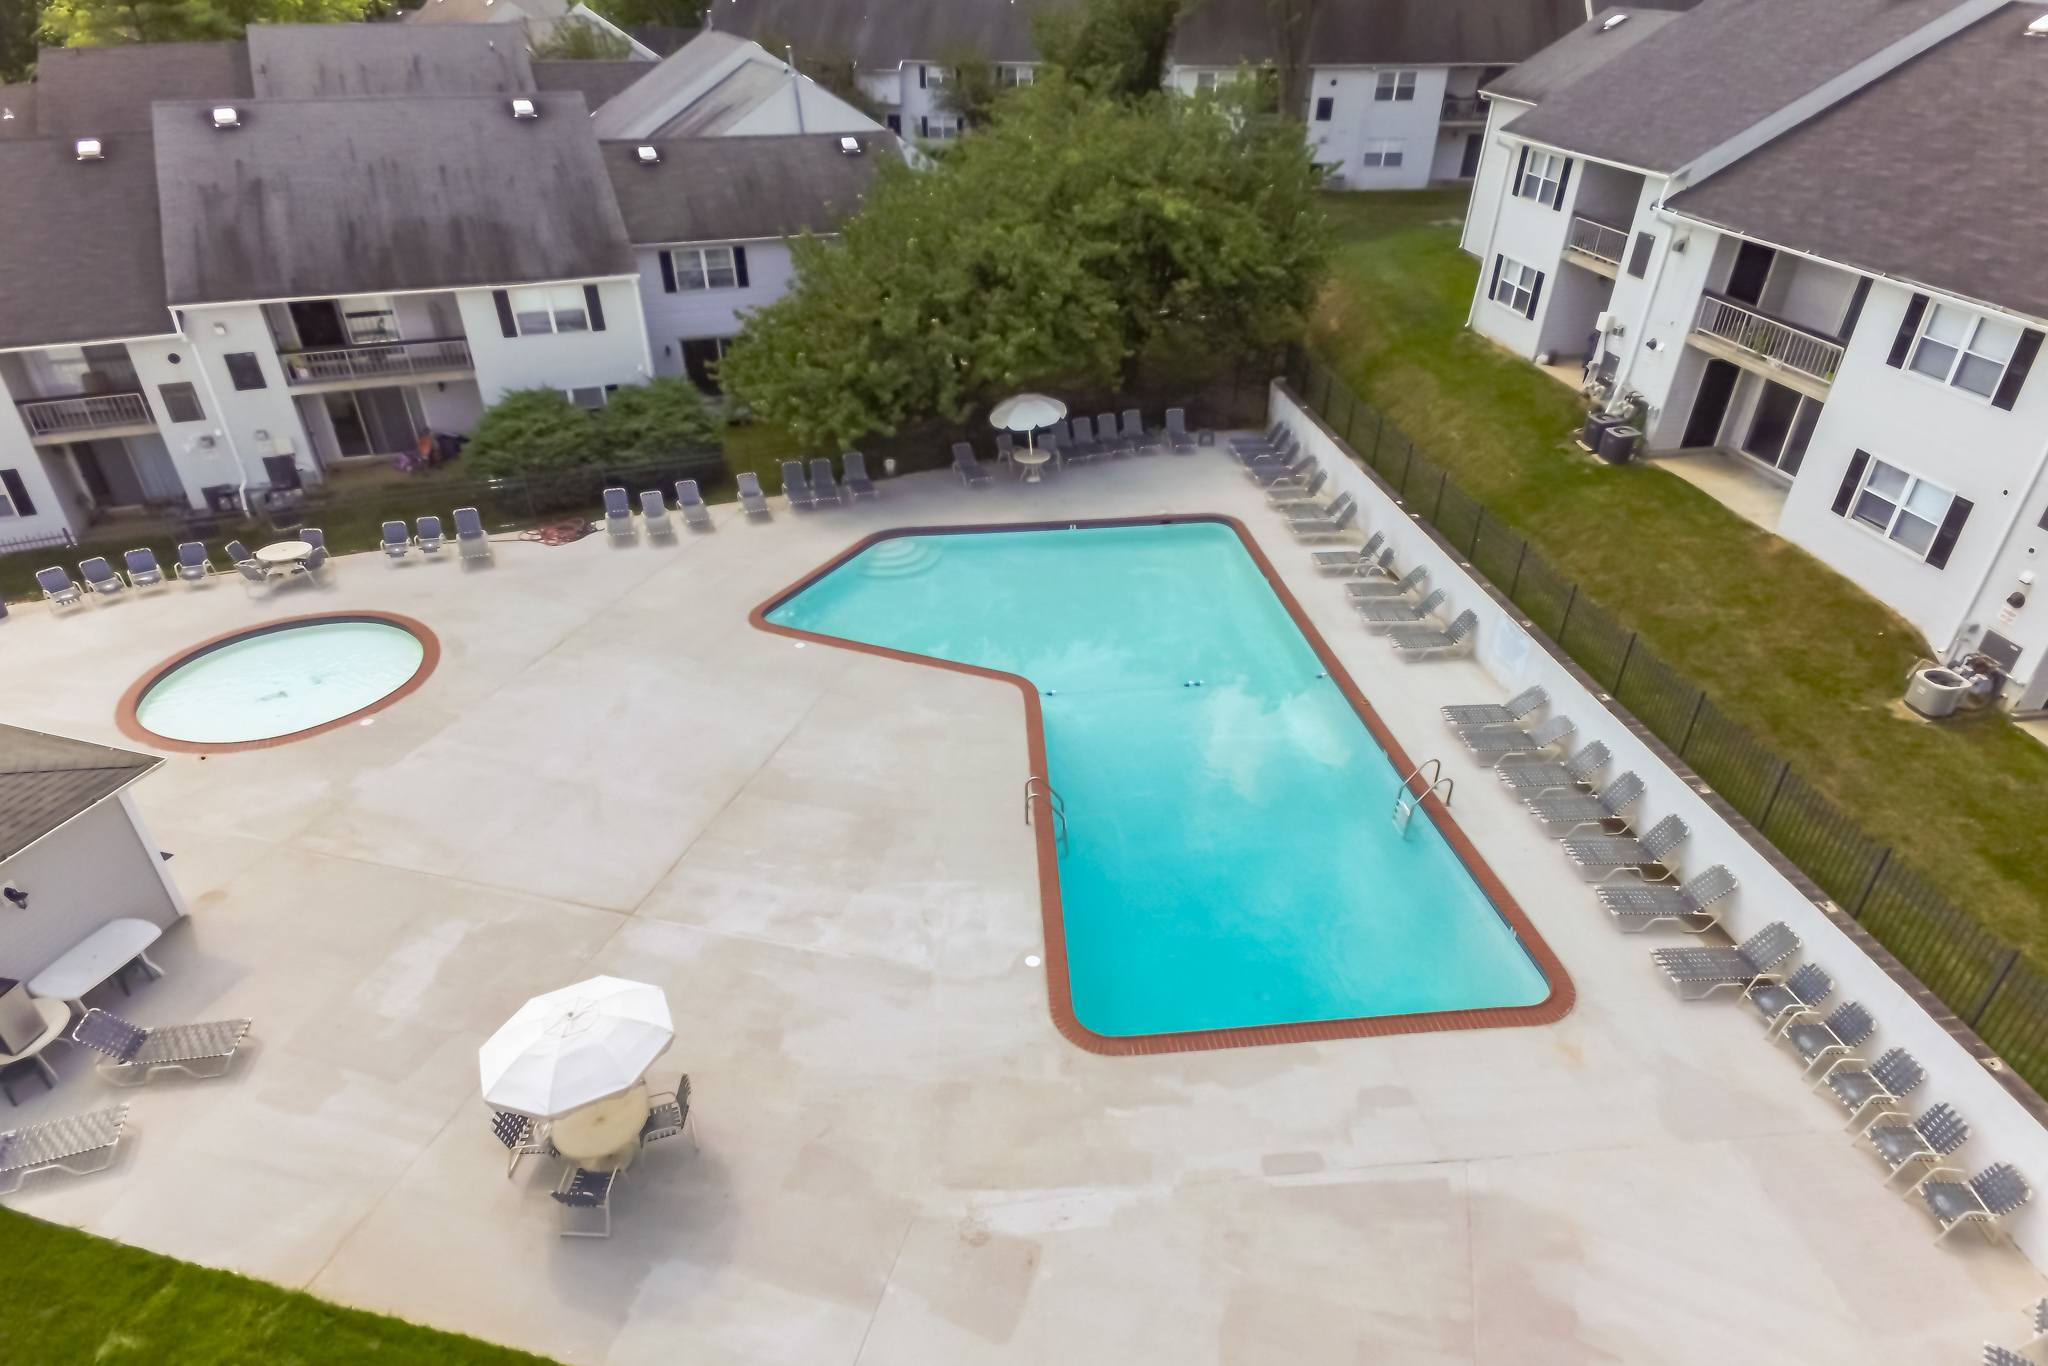 Aerial Pool View of Westgate Village Apartments  in Malvern, PA